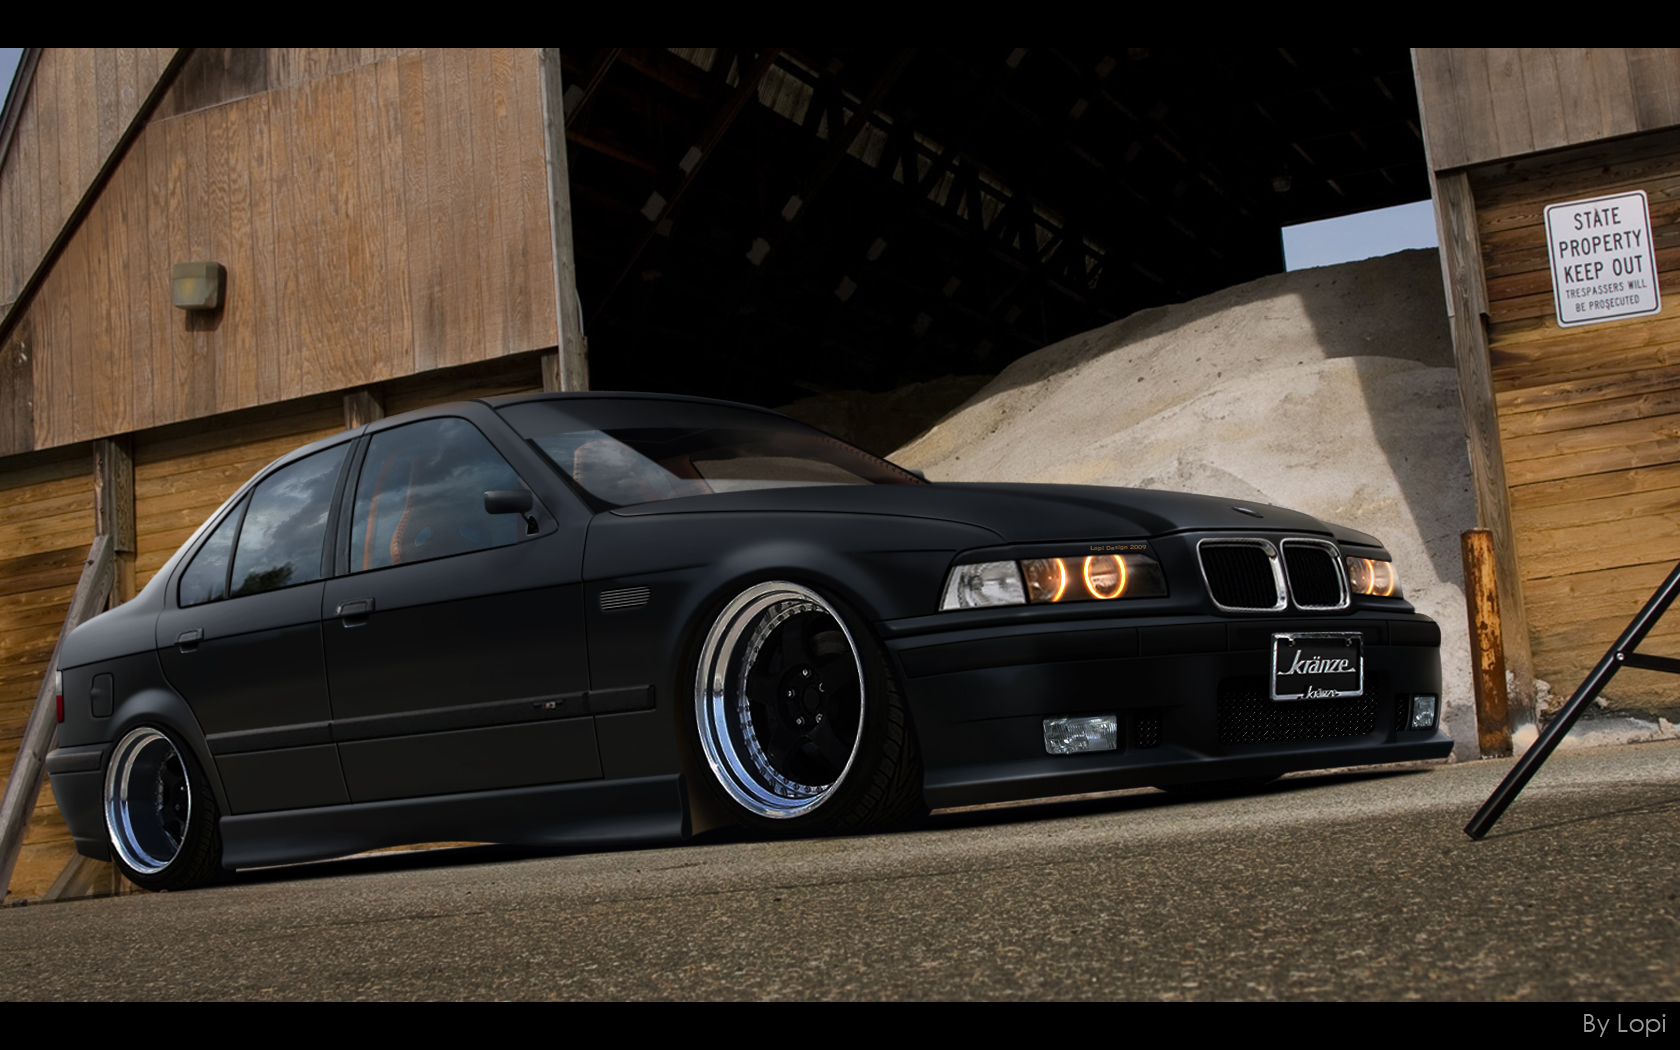 Bmw e36 by lop Wallpapers imagefriendcom 1680x1050